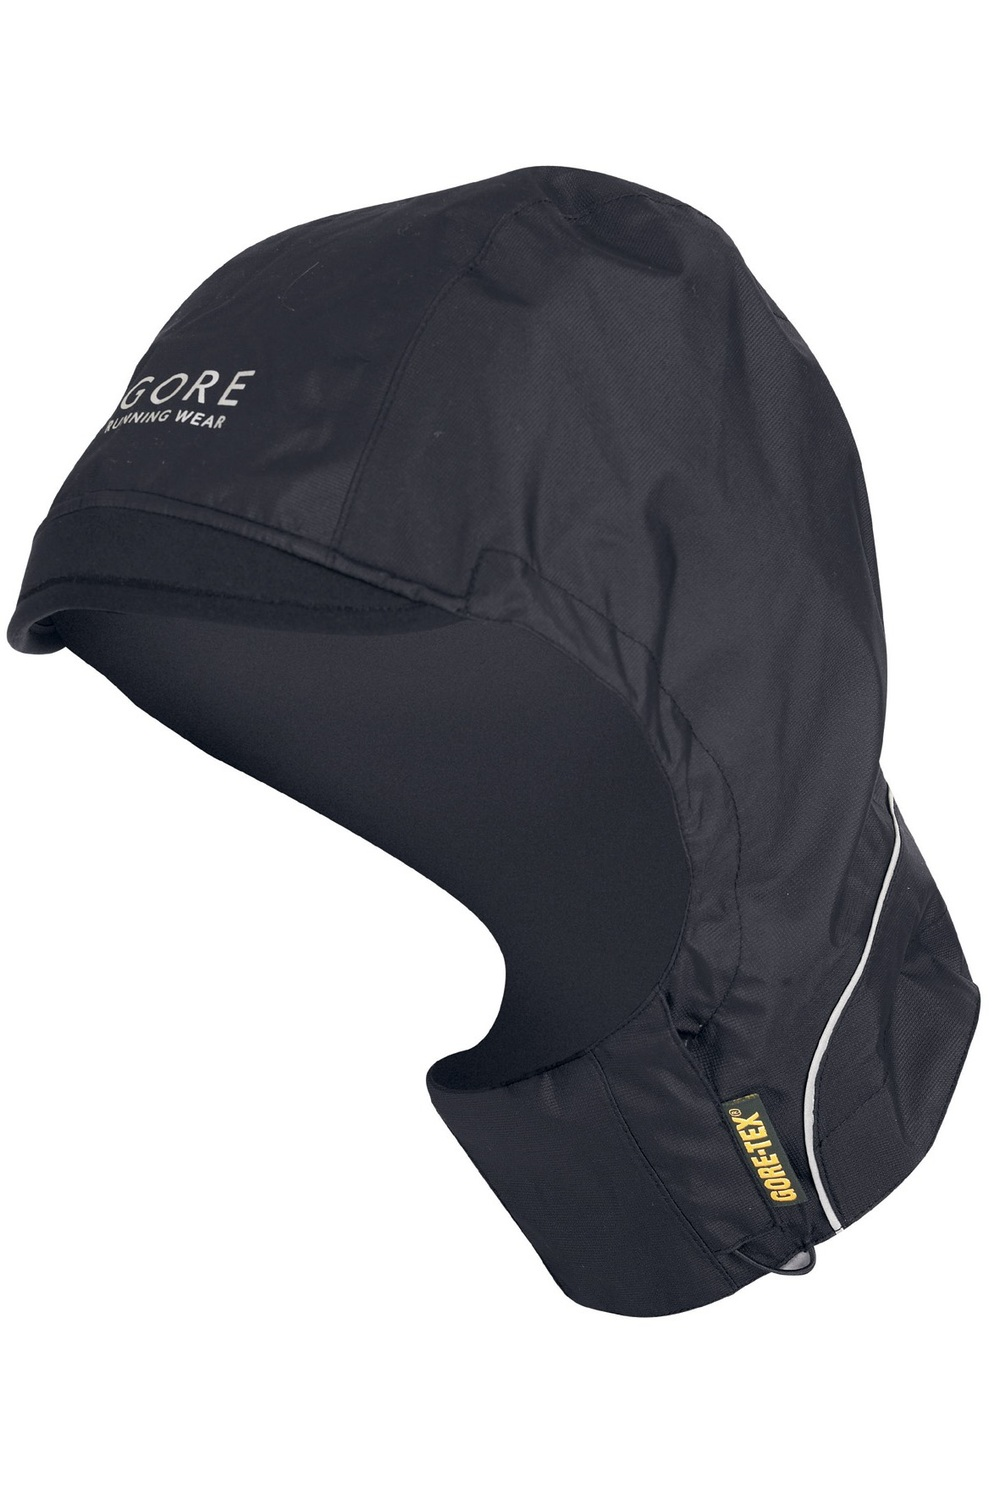 GORE RUNNING WEAR - Shield 2.0 GT AS Hood - 39,95 euros http://www.goreapparel.eu/running-wear/grw,fr_FR,sc.html